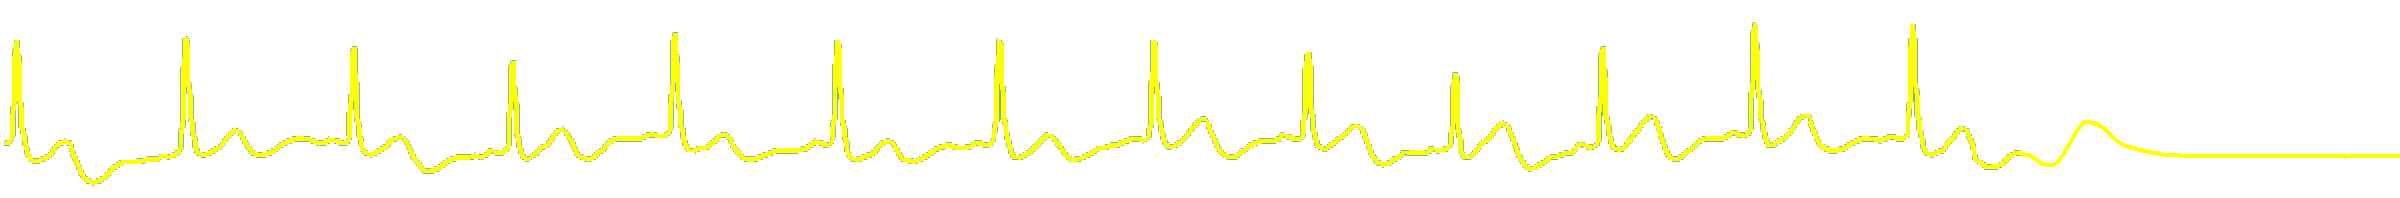 ecg-pulse-yellow